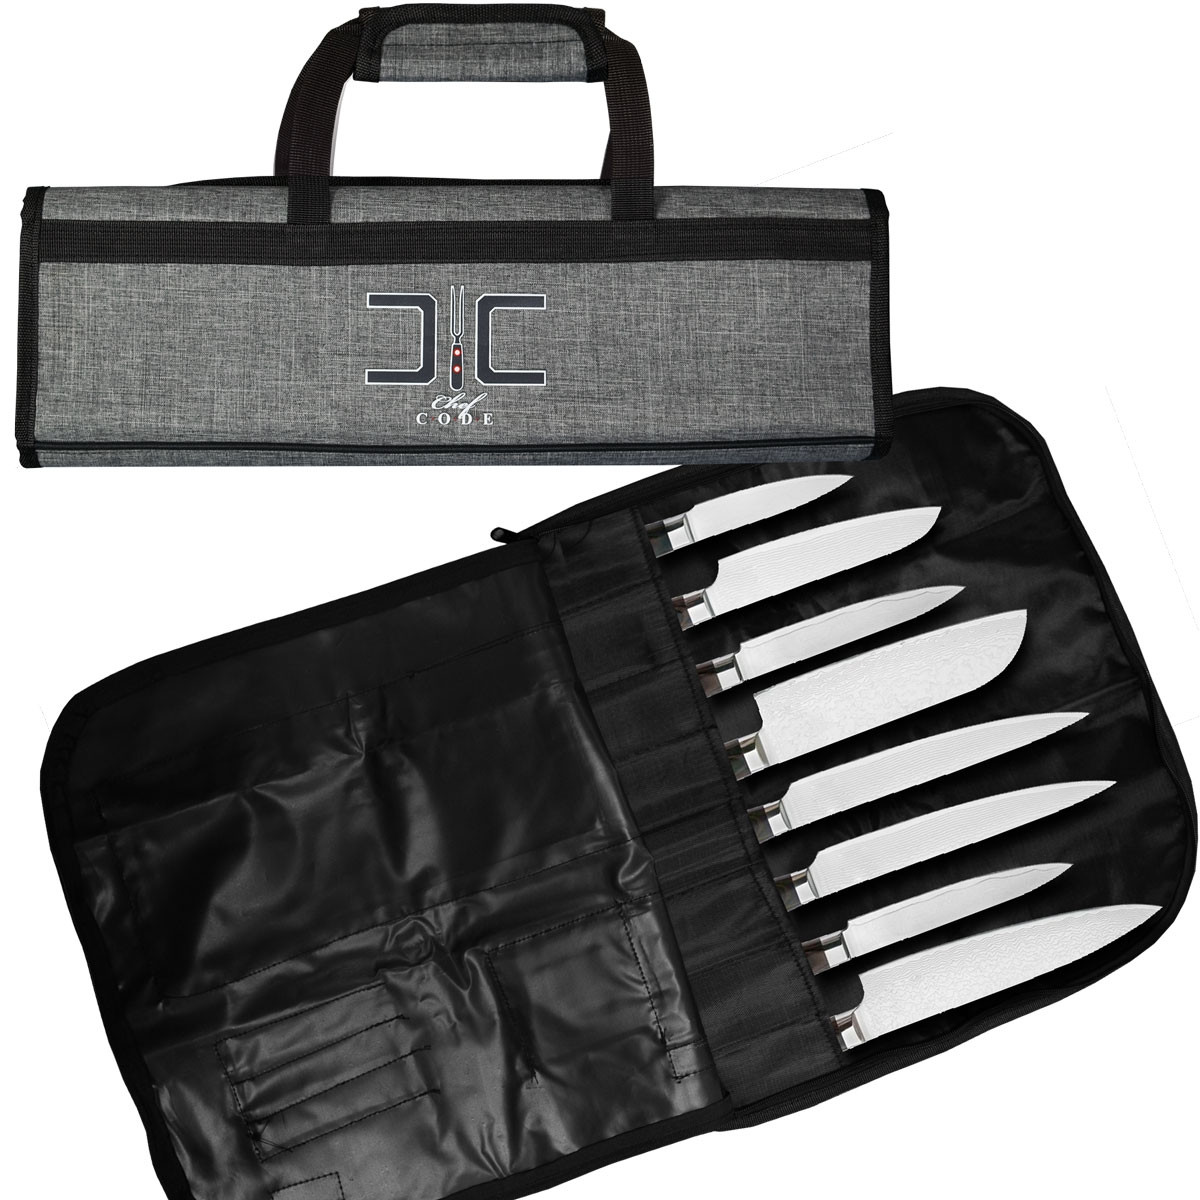 Chef Code Knife Bag 8 Roll With Accessory Mesh Pockets